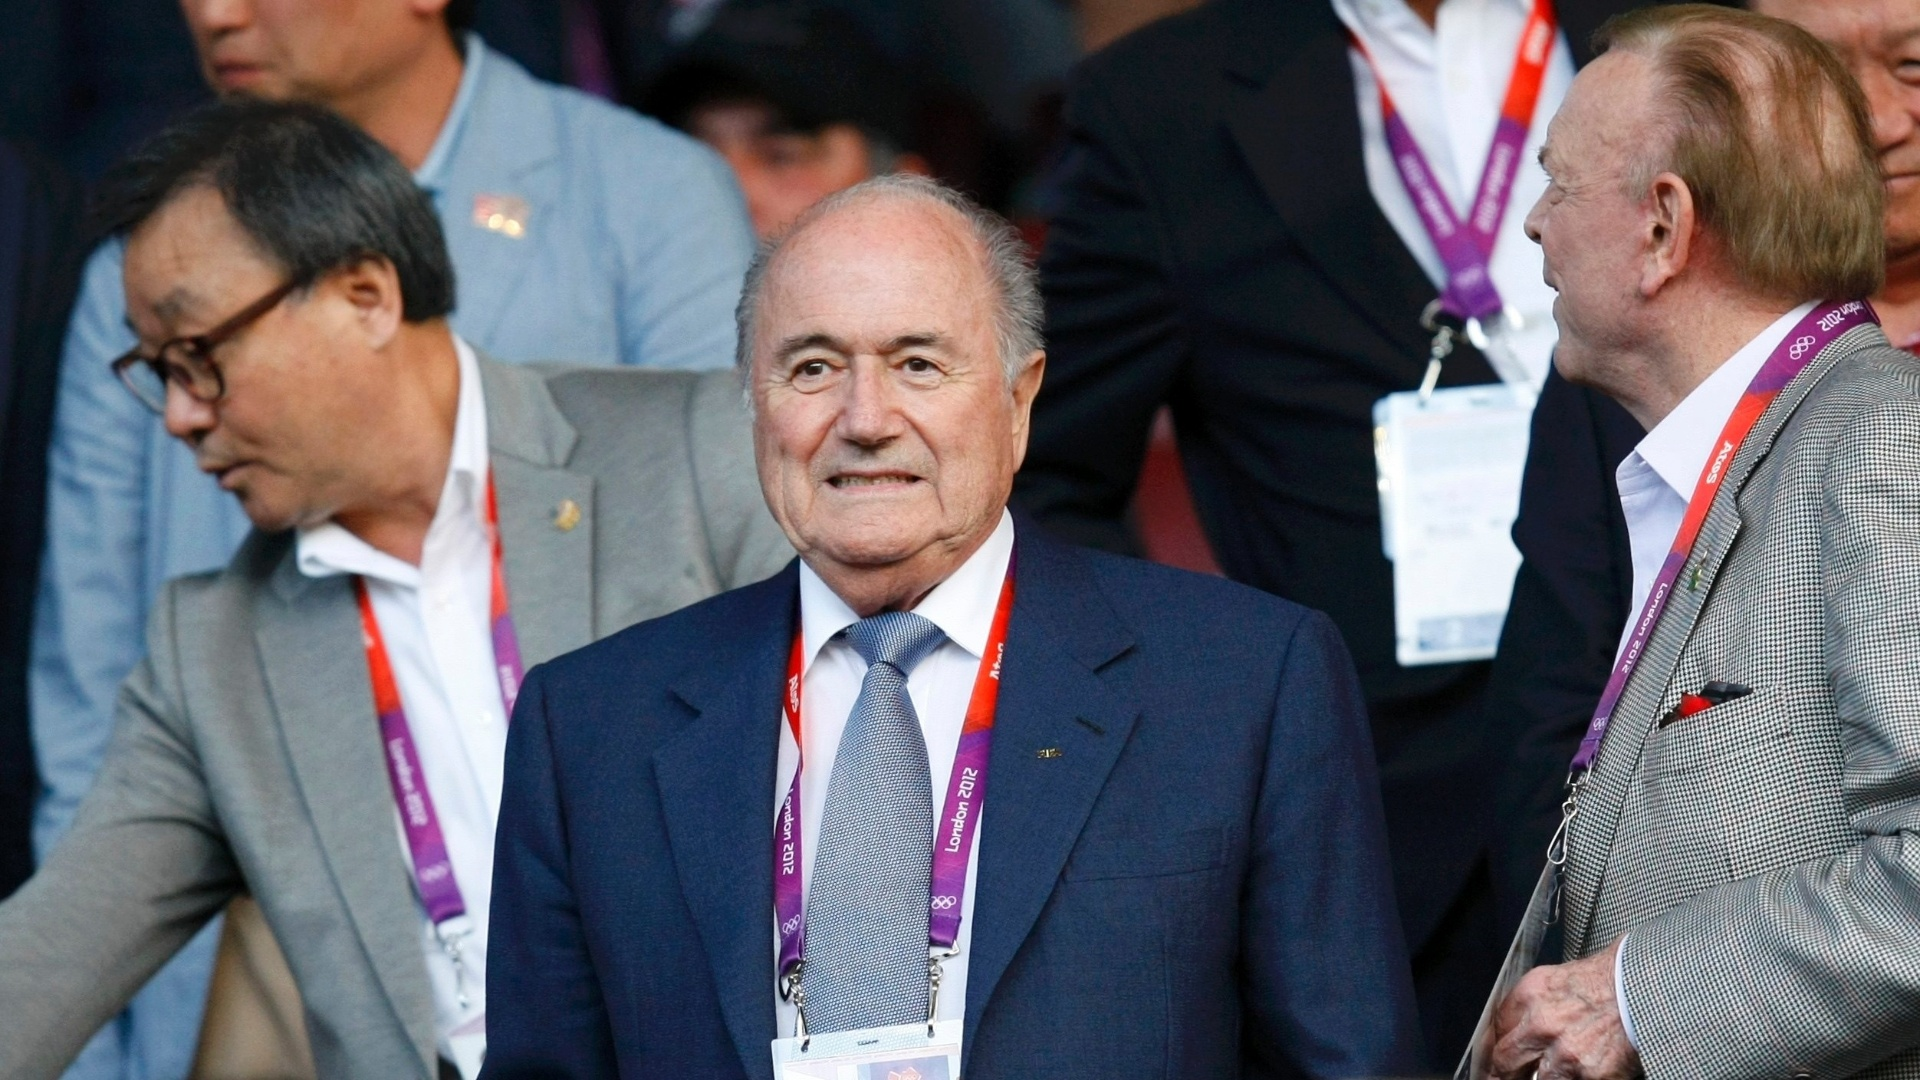 Presidente da Fifa, Joseph Blatter, ao lado do presidente da CBF, Jos Maria Marin, acompanham o jogo entre Brasil e Coreia do Sul